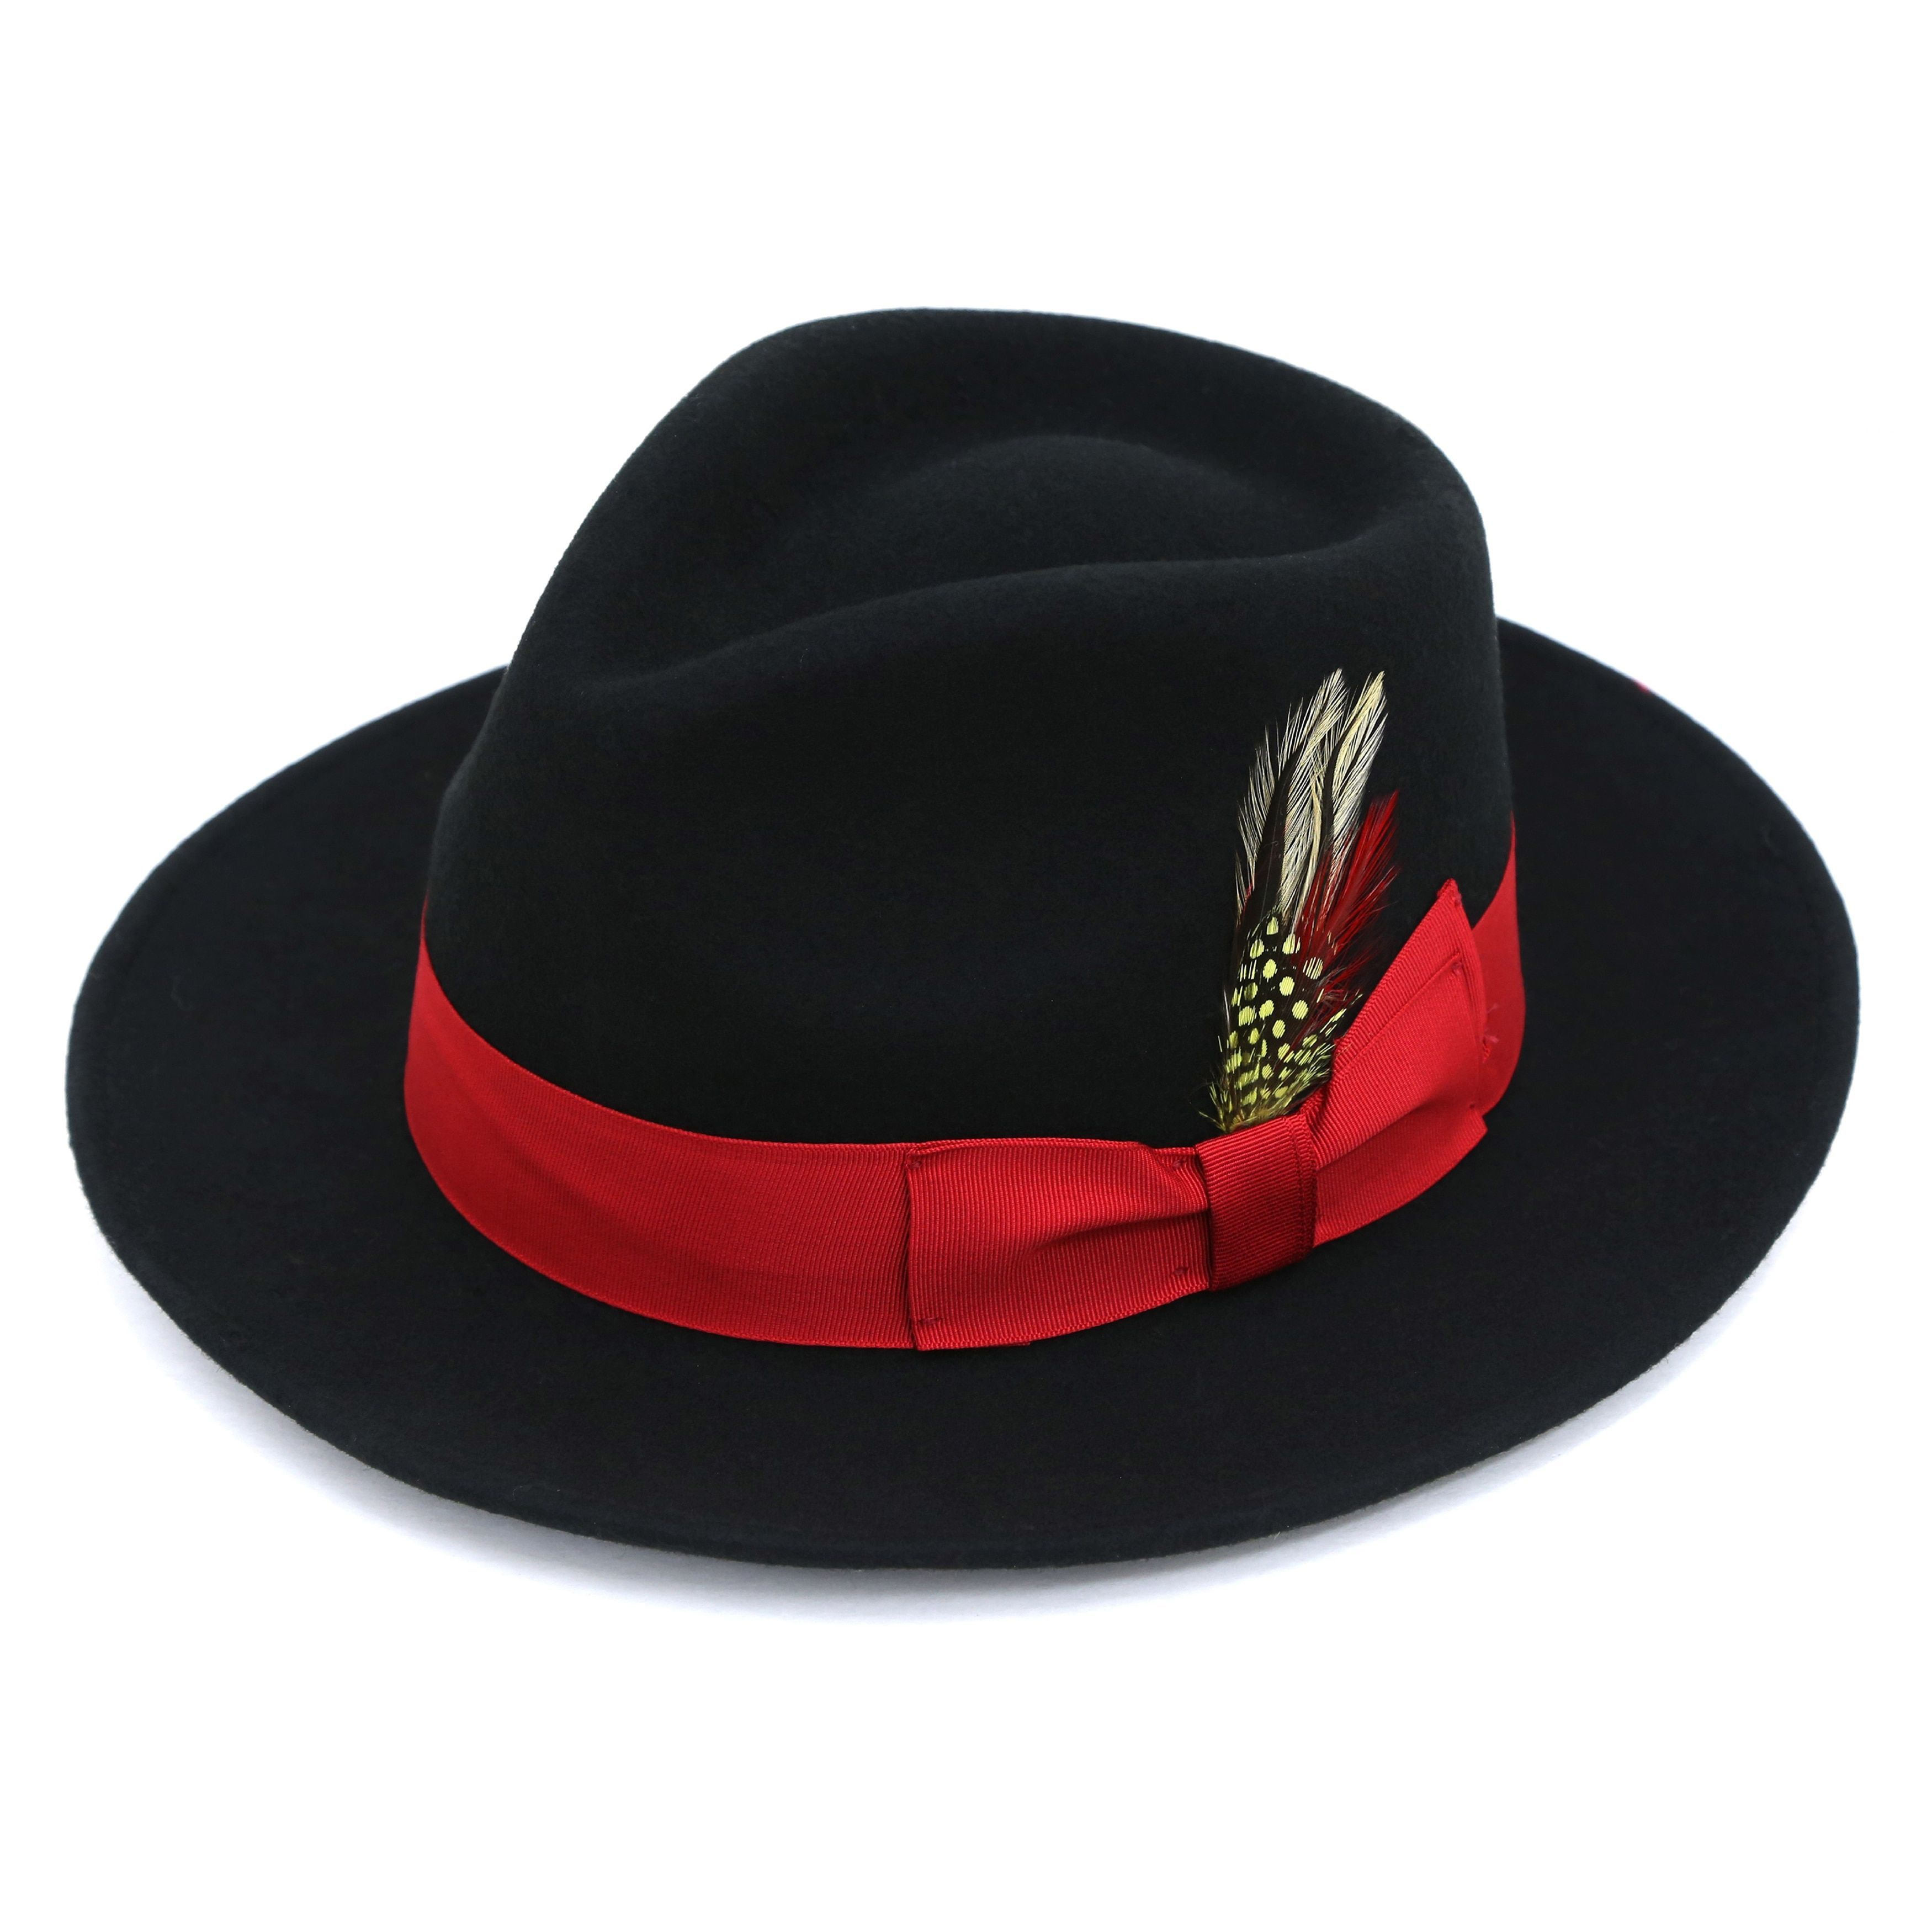 39d1c09685c Ferrecci Men s Premium Black with Red Band Wool Fully Lined Fedora ...